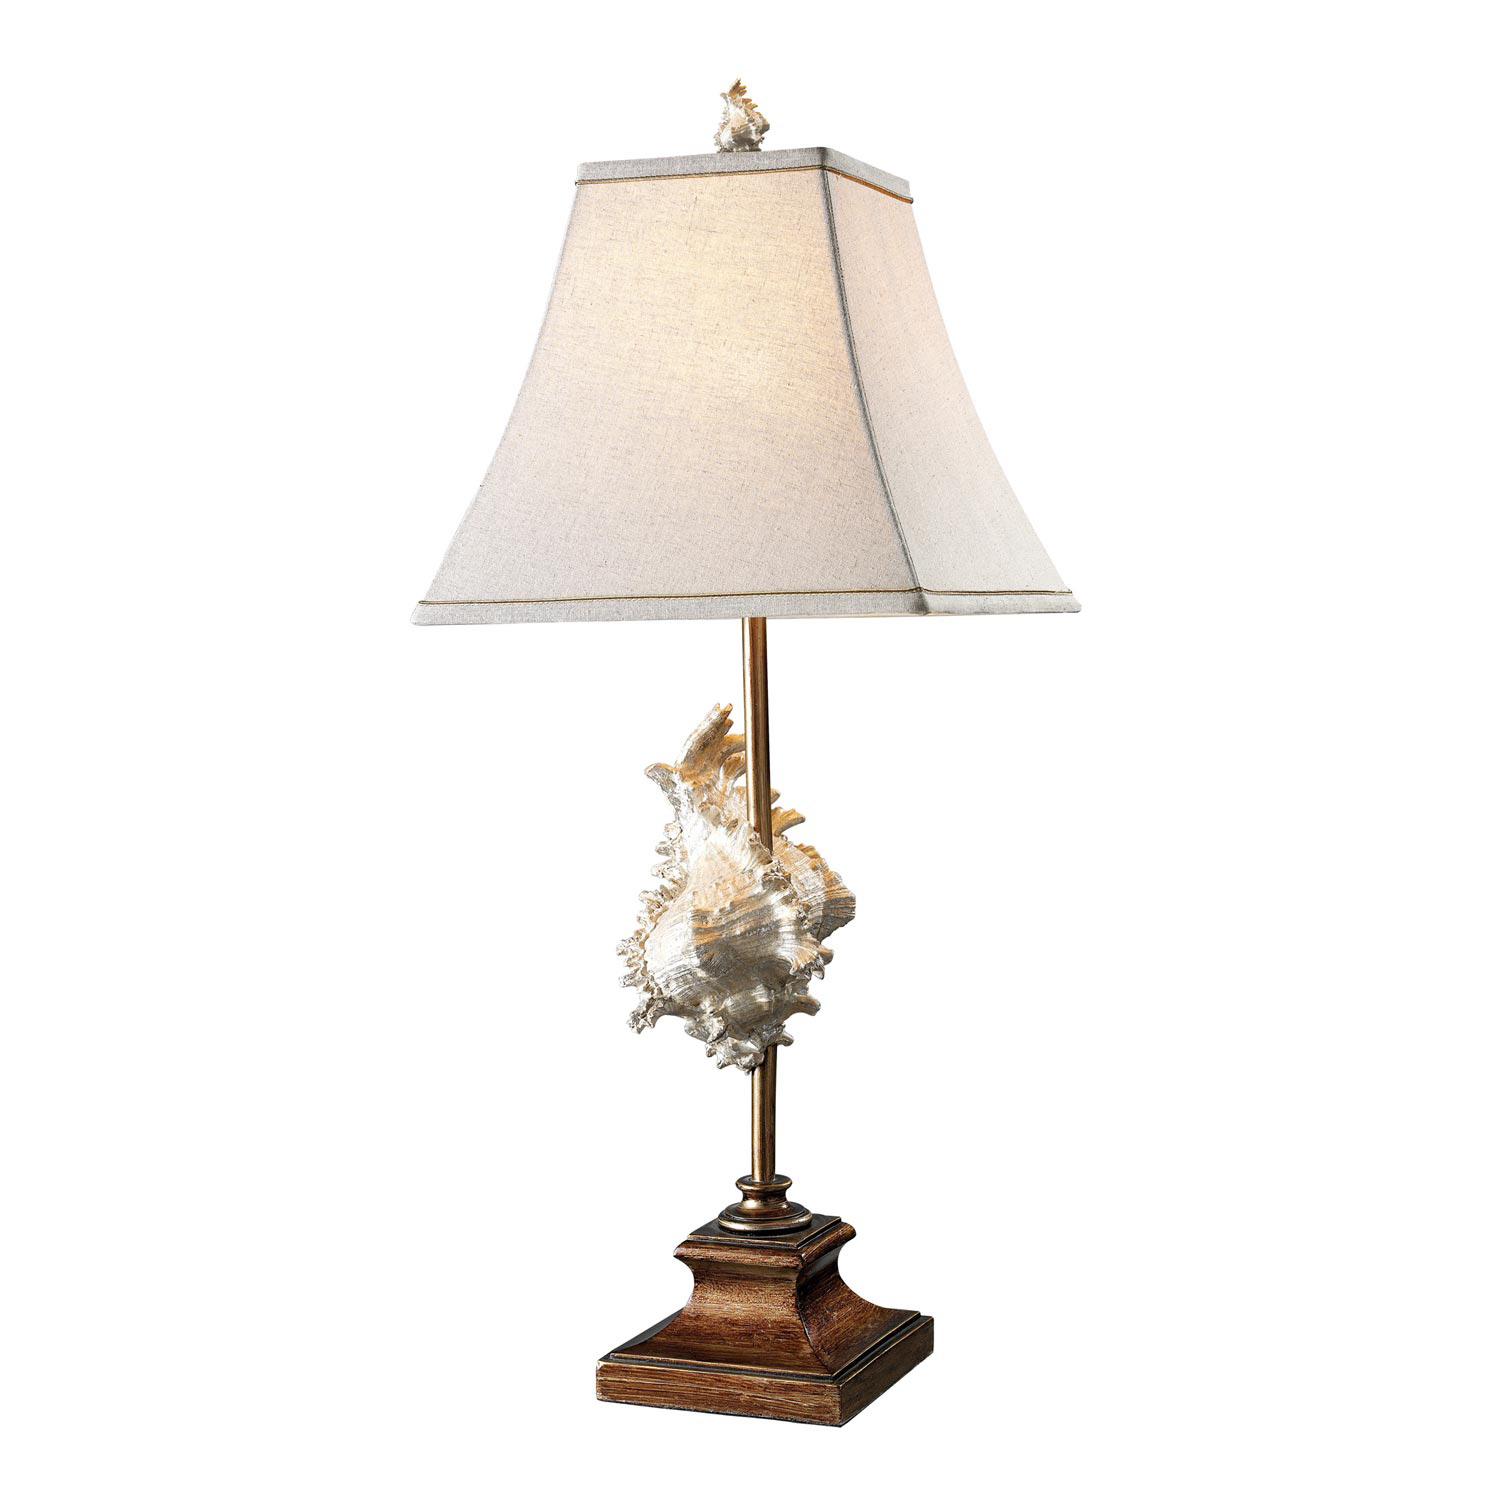 Elk Lighting D1979 Delray Table Lamp - Conch Shell and Bronze